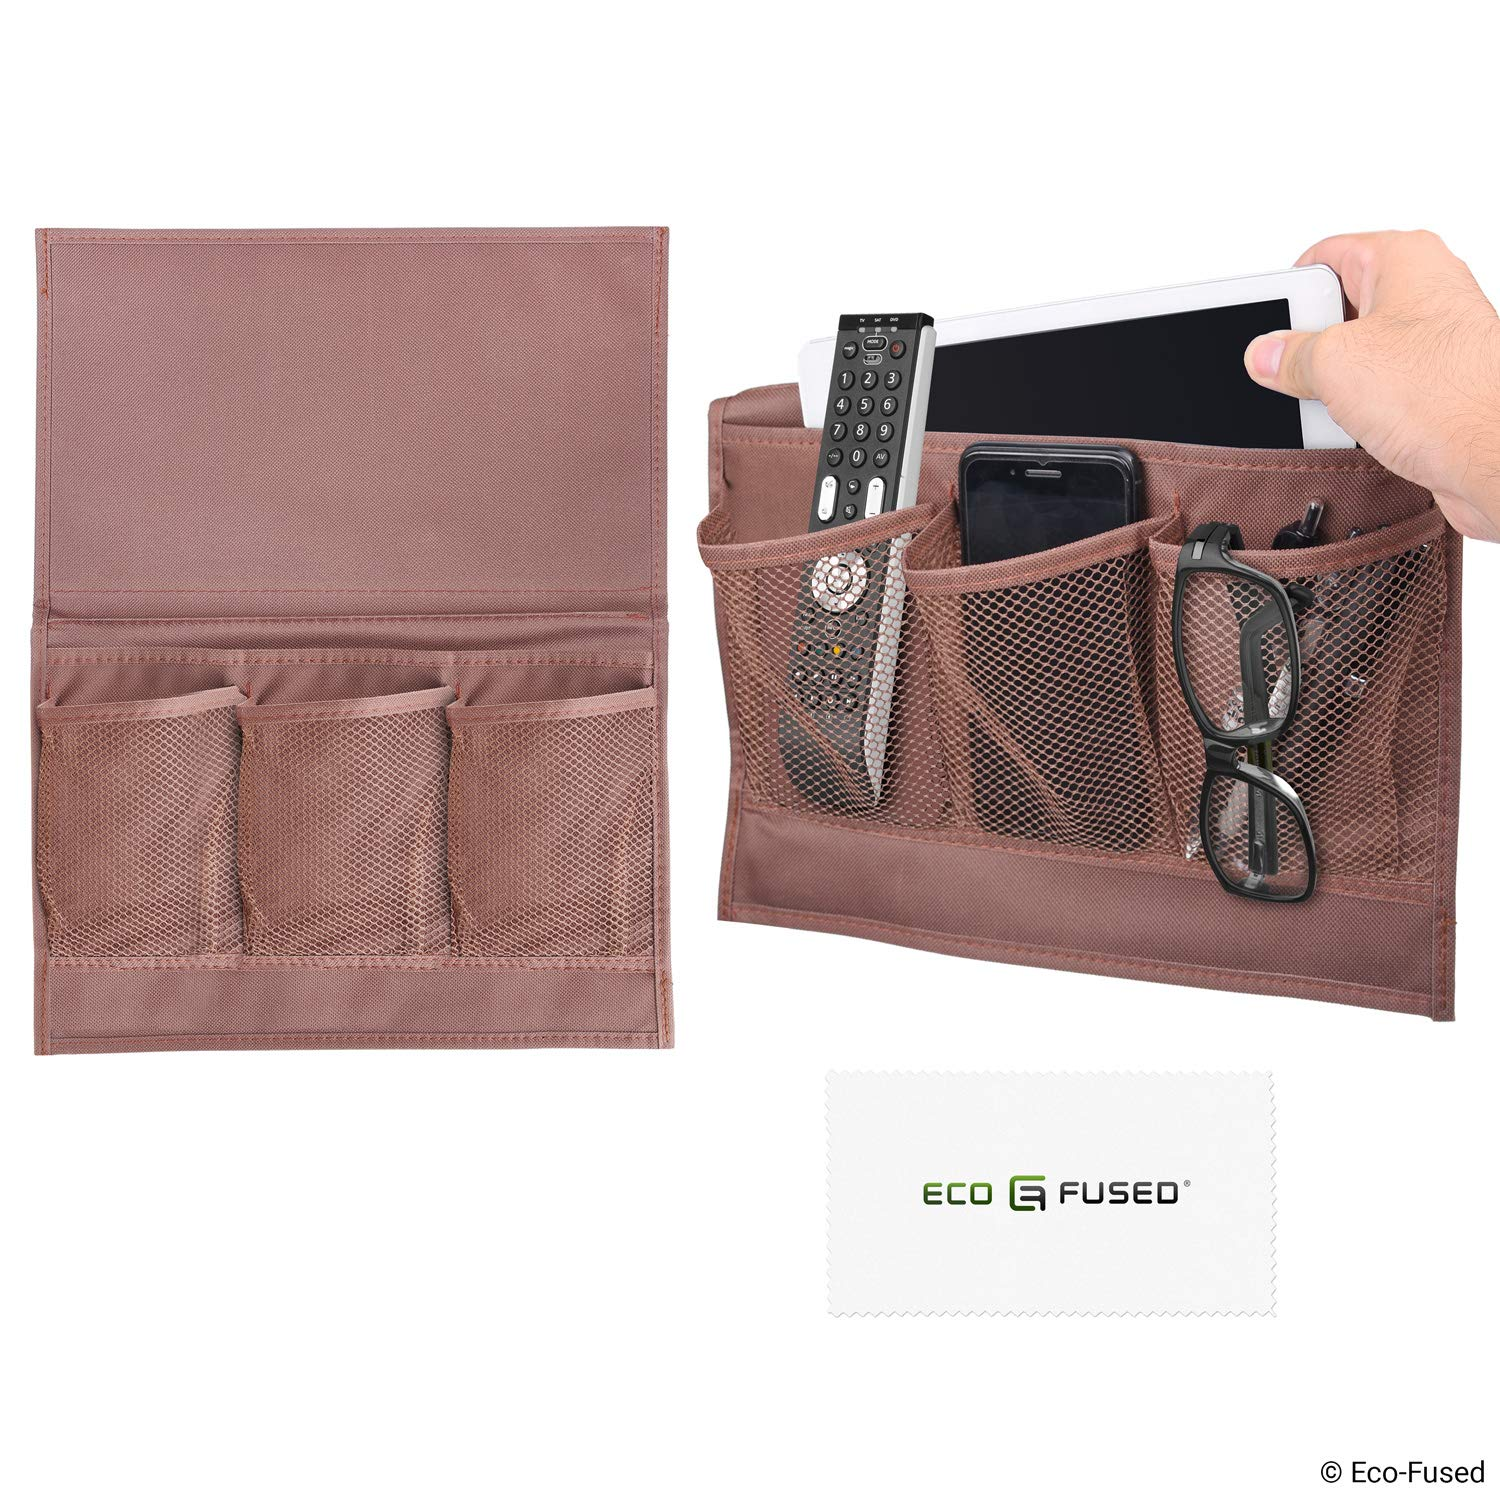 Bed Side Pocket Organizer - Set of 2 - Chocolate Brown - This Storage Caddy Keeps Things Within Reach of Your Sofa/Bed - for Example: Remote Control, Phone, Tablet, Magazine, Eyeglasses, etc. Eco-Fused D0702-BSC-2BR